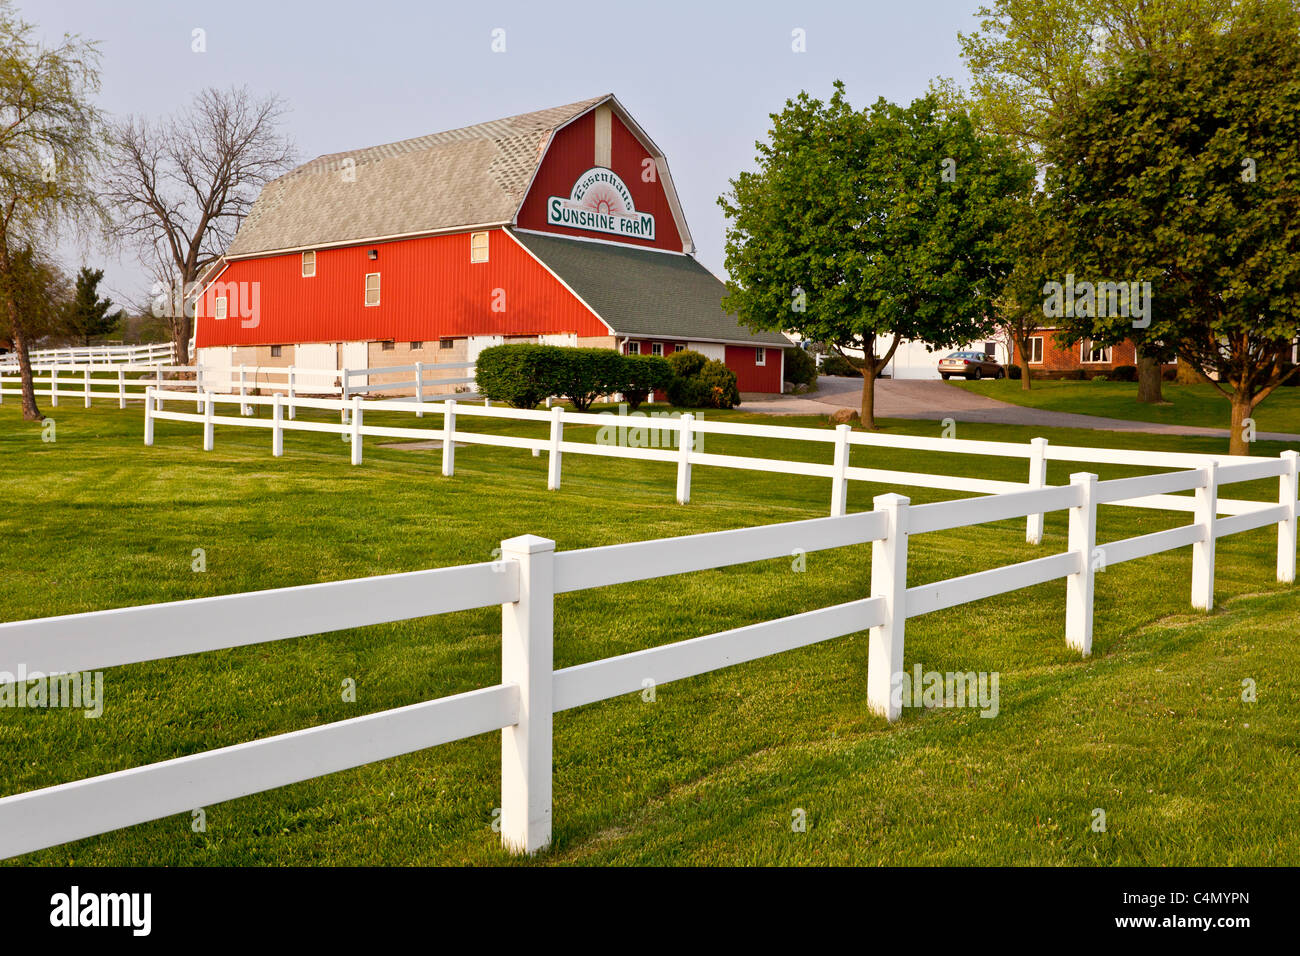 A red barn at the Sunshine Farm and Essenhaus in Middlebury, Indiana, USA. - Stock Image